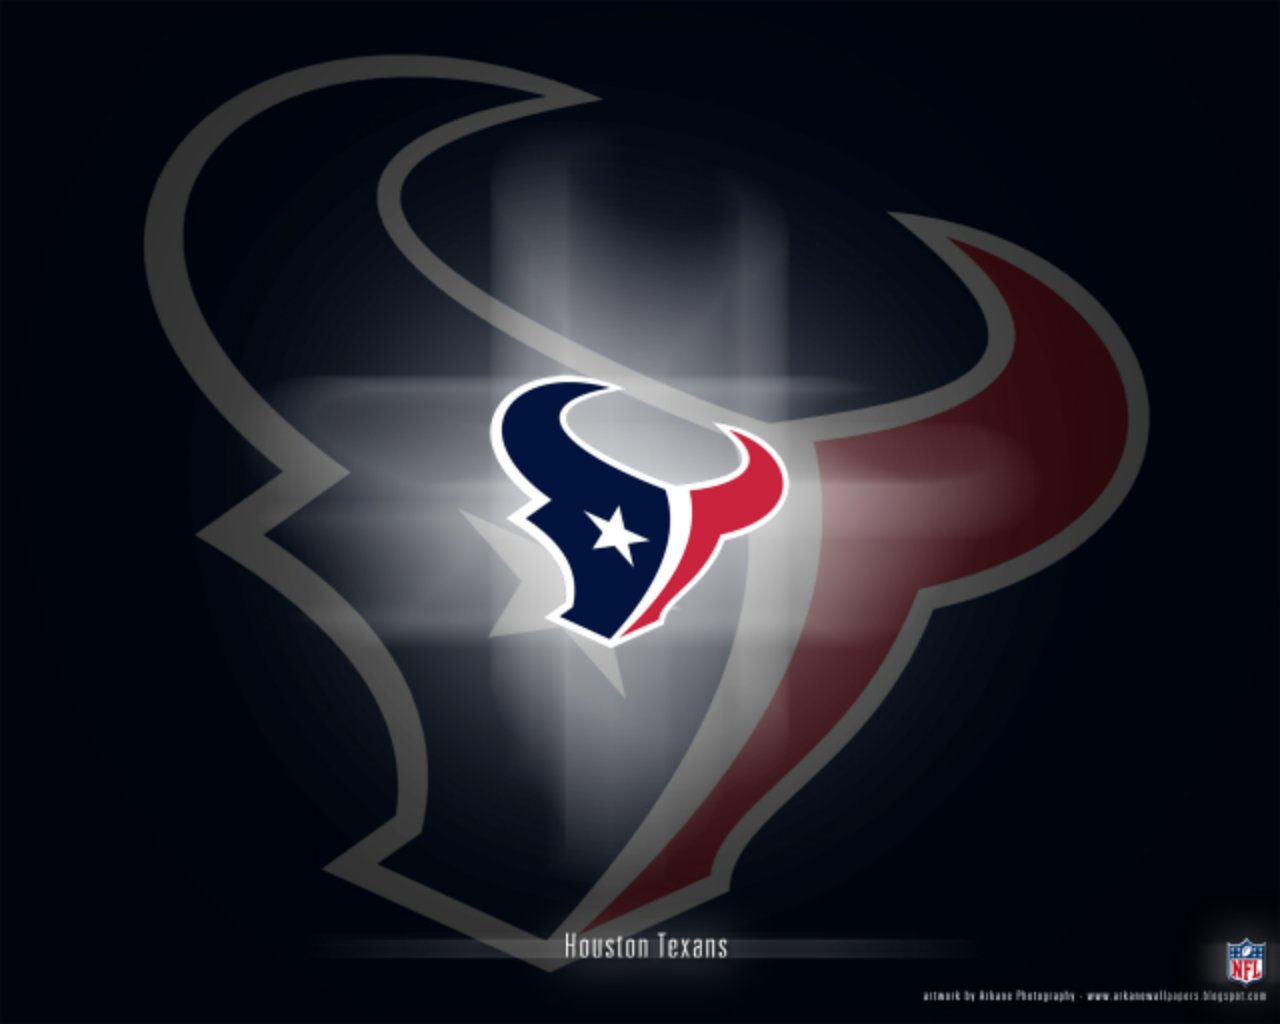 Draft in Review: Houston Texans